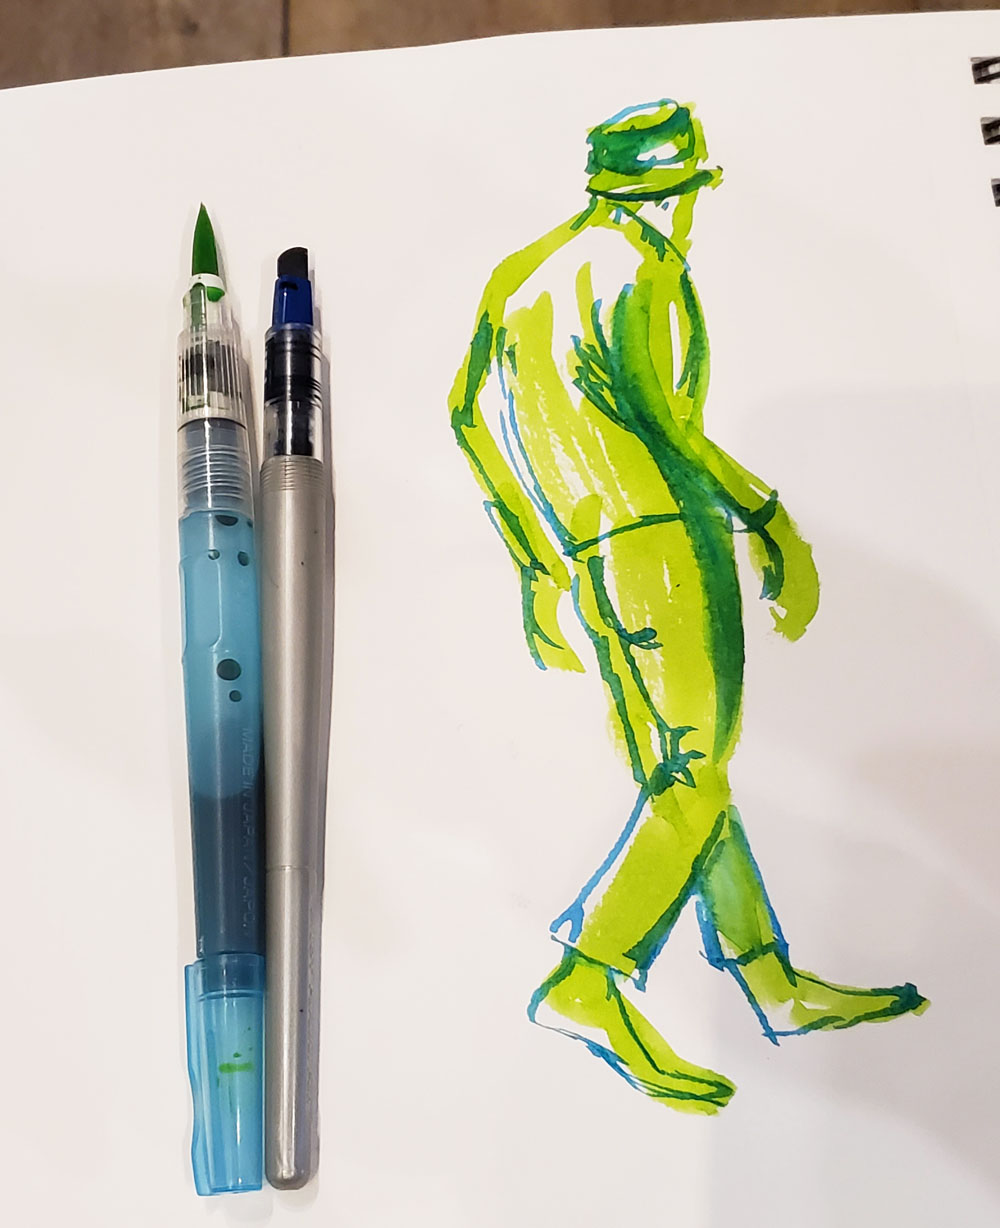 waterbrush and Parallel sketch